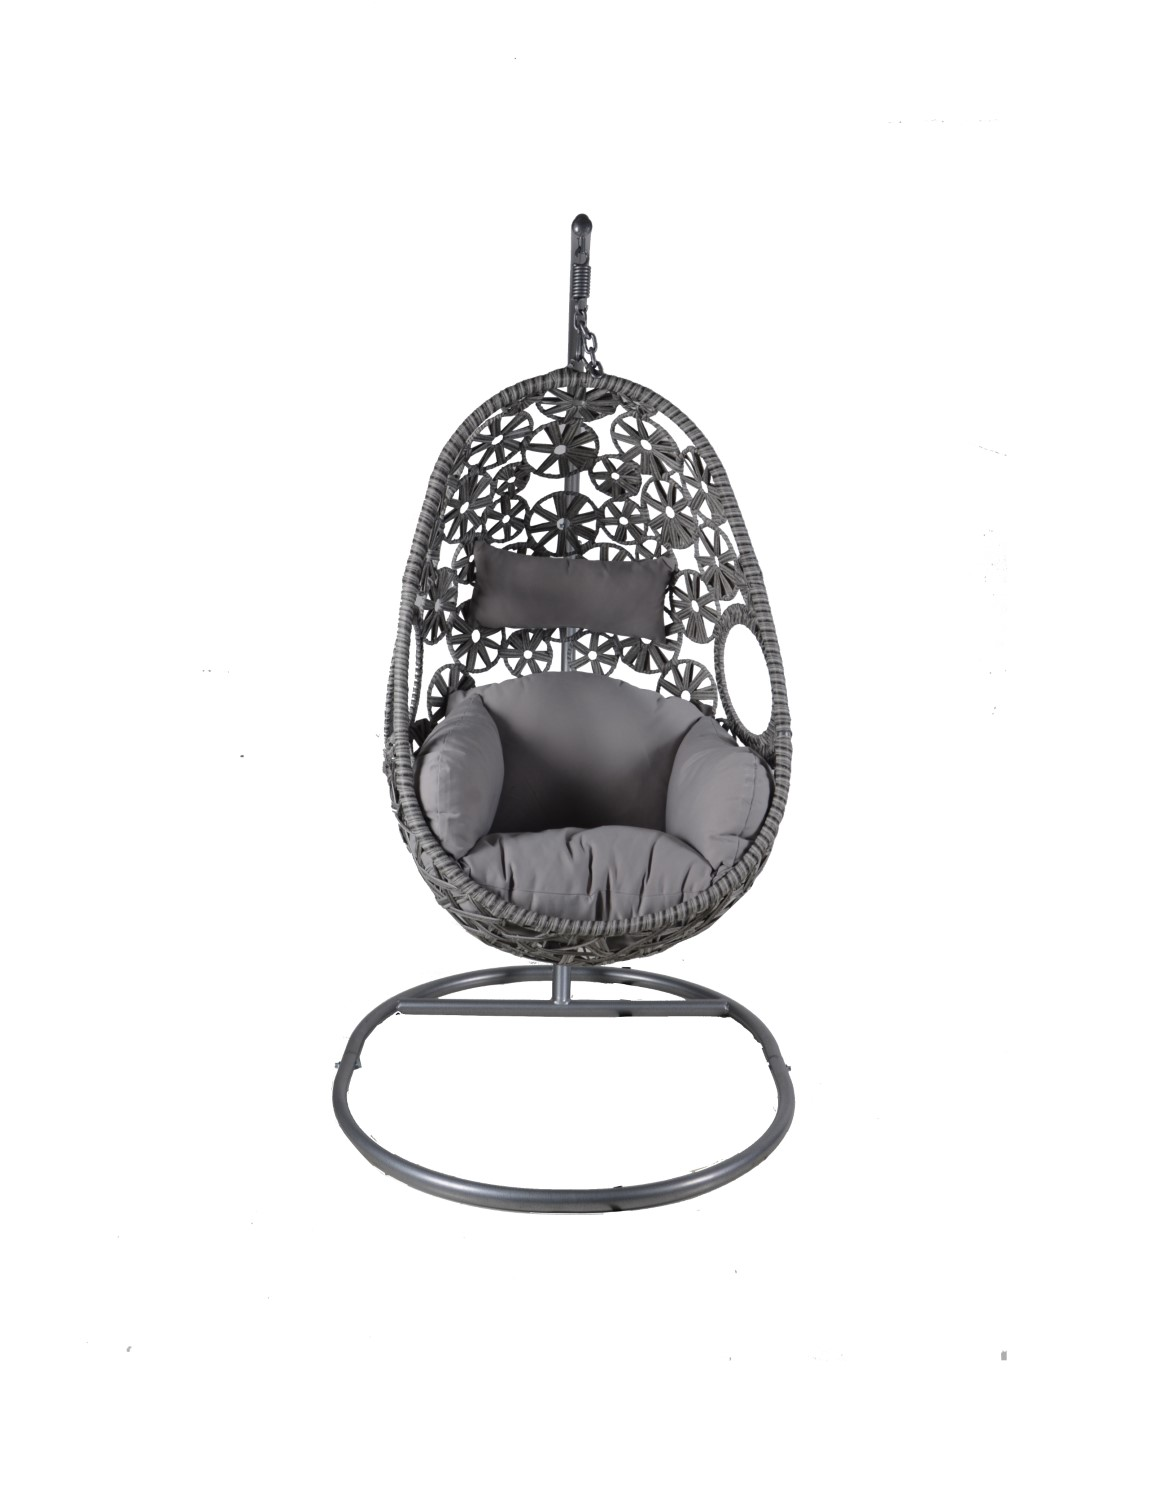 Chintaly Santa Monica Swing Design Rattan Chair With